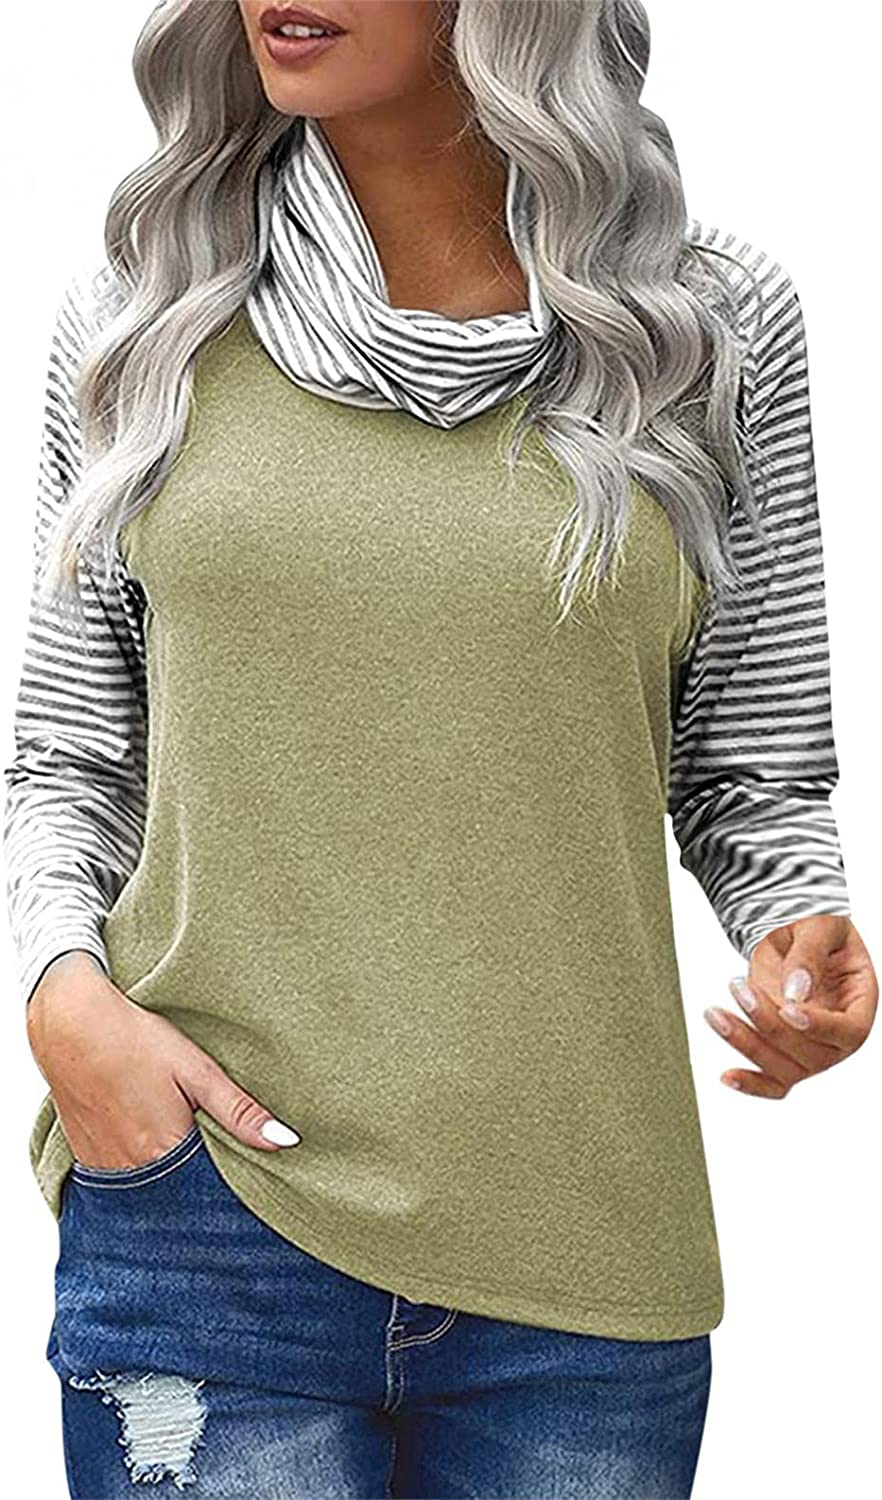 Nyybw price Womens Turtle Neck Long Tops Casual Str Sleeve Outlet ☆ Free Shipping